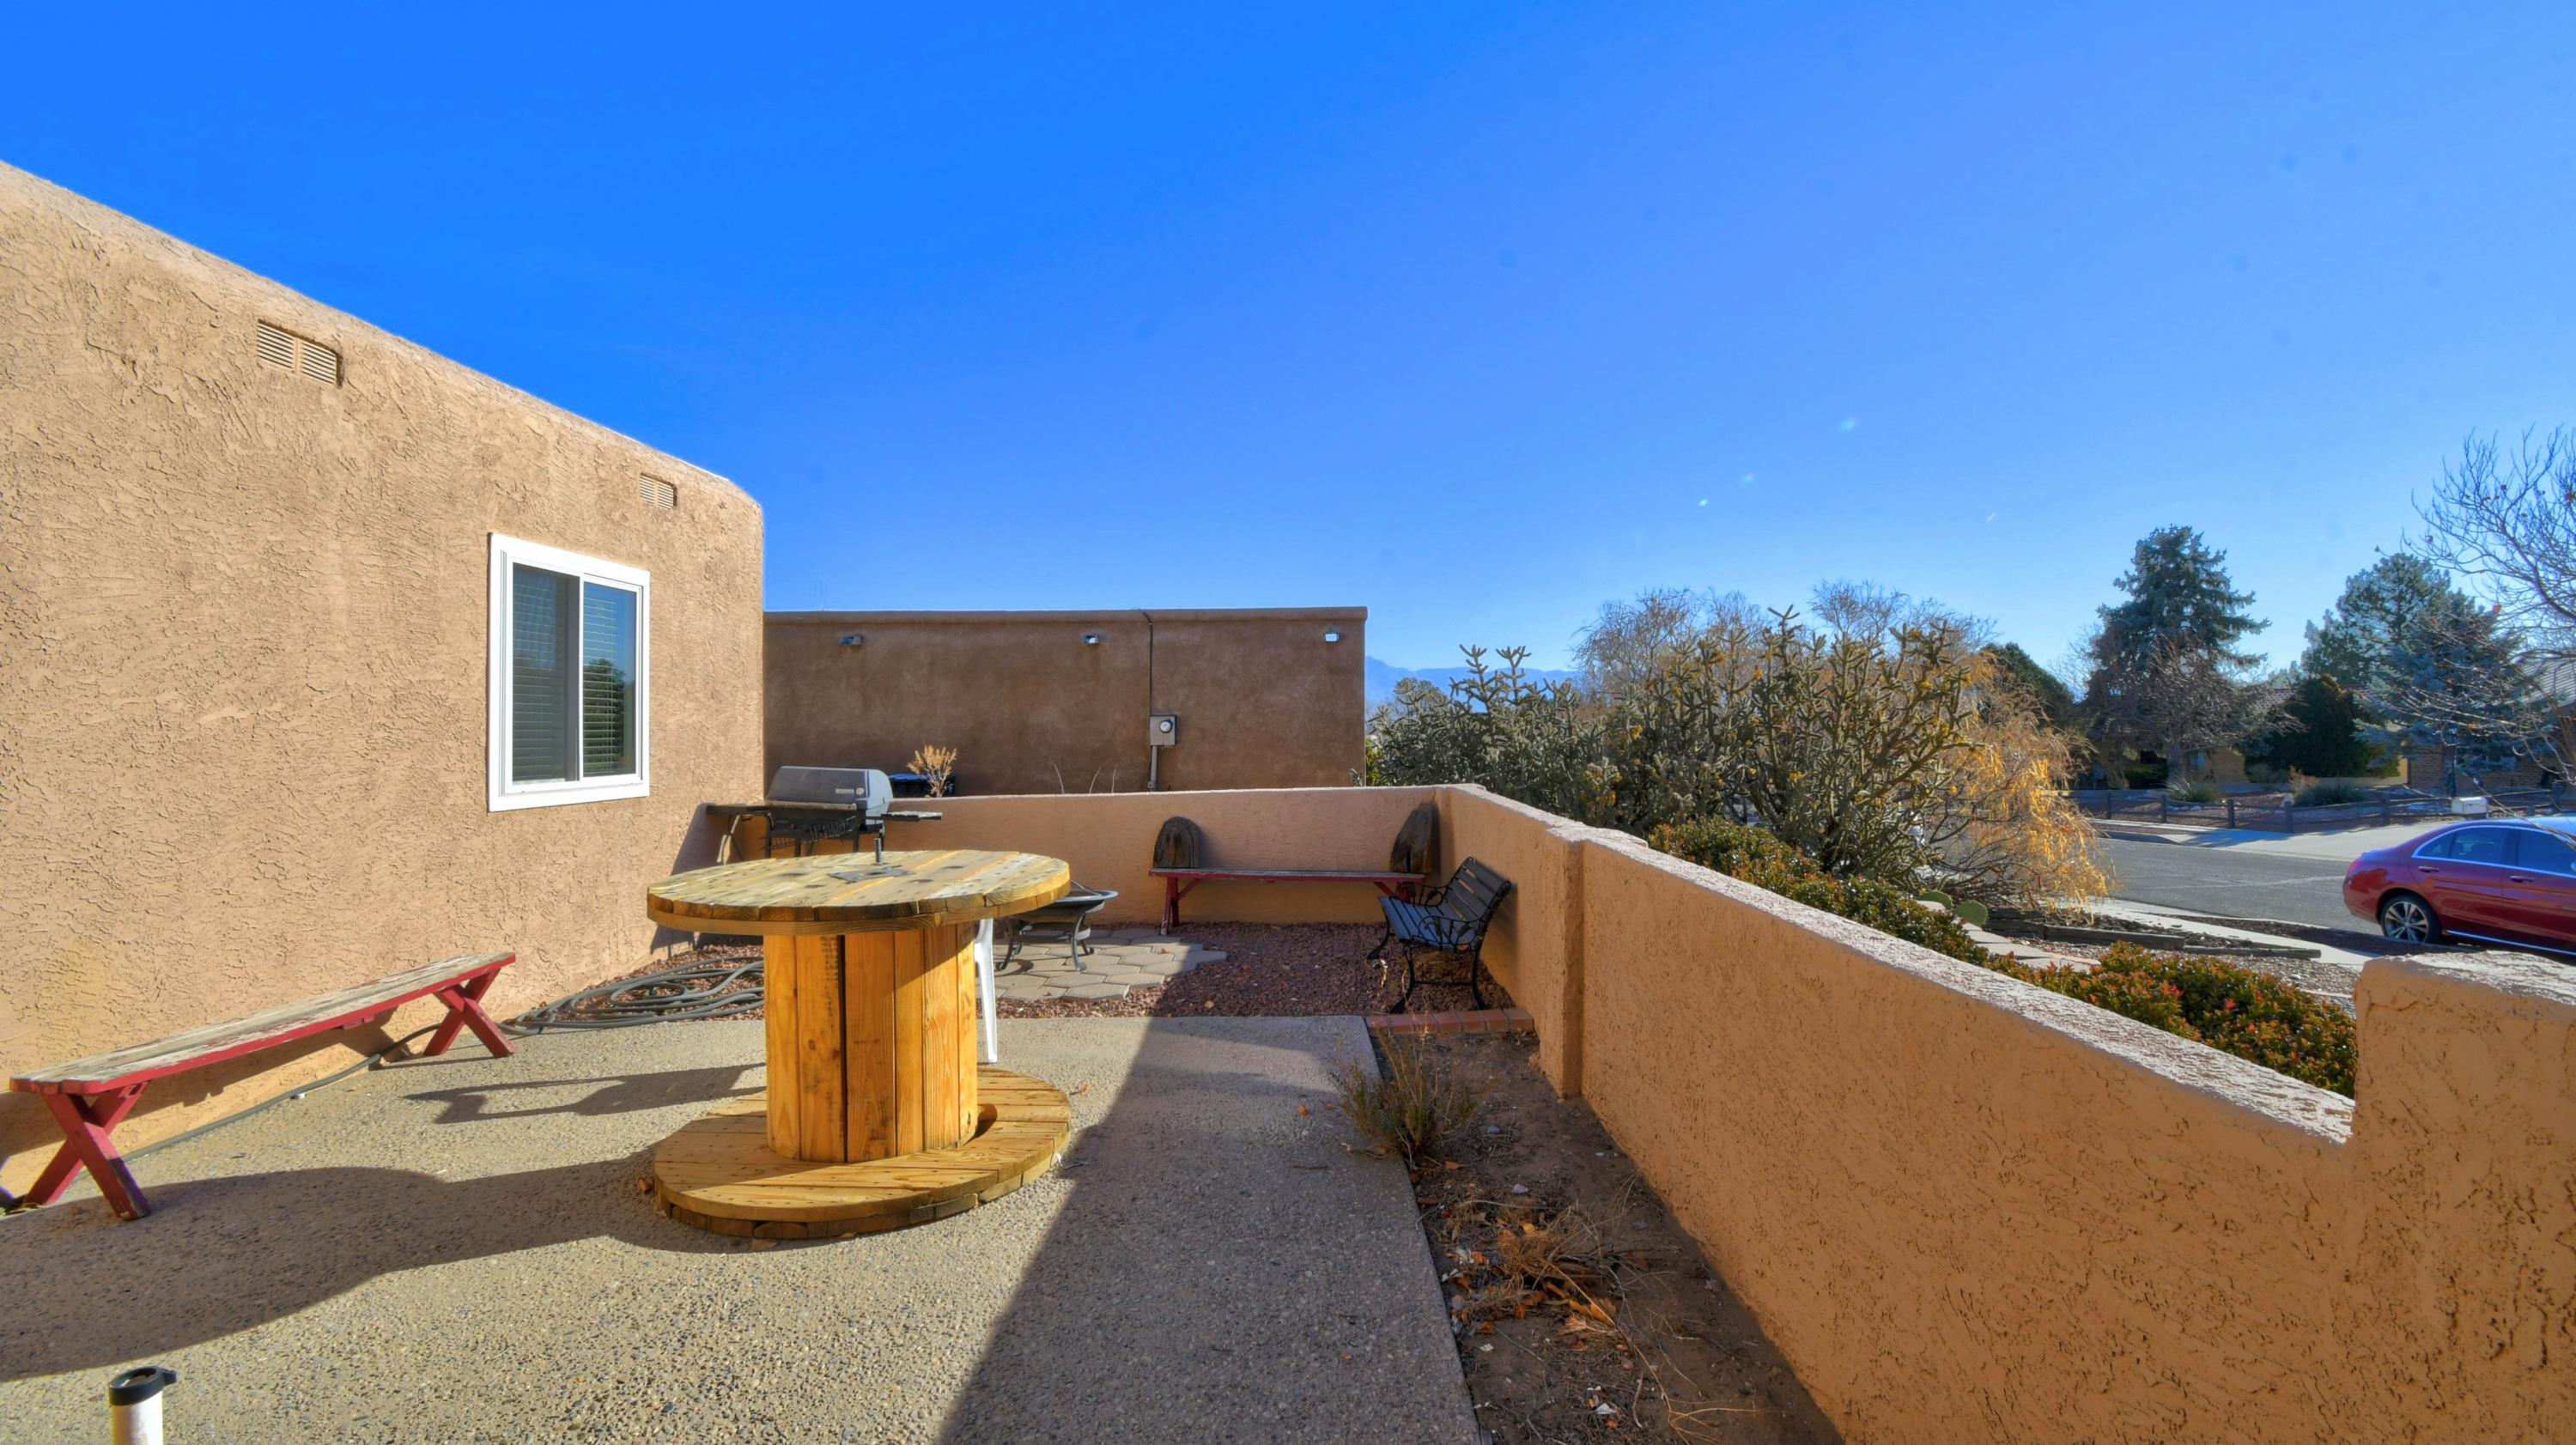 Come bring your Buyers to this BEAUTIFUL PUBELO STYLE HOME located on a corner lot with  Mountain Views and City Views from your  backyard w/putting green and water fall. Enjoy the wrap around porch in  your private backyard that also includes a storage  shed.  Great courtyard welcomes you to this updated single story home in this desirable Taylor Ranch Area. Beam & Tongue/Groove Ceiling-kiva Fireplace w/banco pellet stove insert, wtih Hardwood Floors & vigas in Living room . Features 2 Living Areas with a spacious family room that is PERFECT for ENTERTAINING. Master Bedroom and 2nd Bedroom have cork flooring.All Appliances stay, BIG laundry room w/cabinets, shelving and utility sink. Backyard access and room for RV with a dump access. Updated windows & fairly new TPO Roofing.